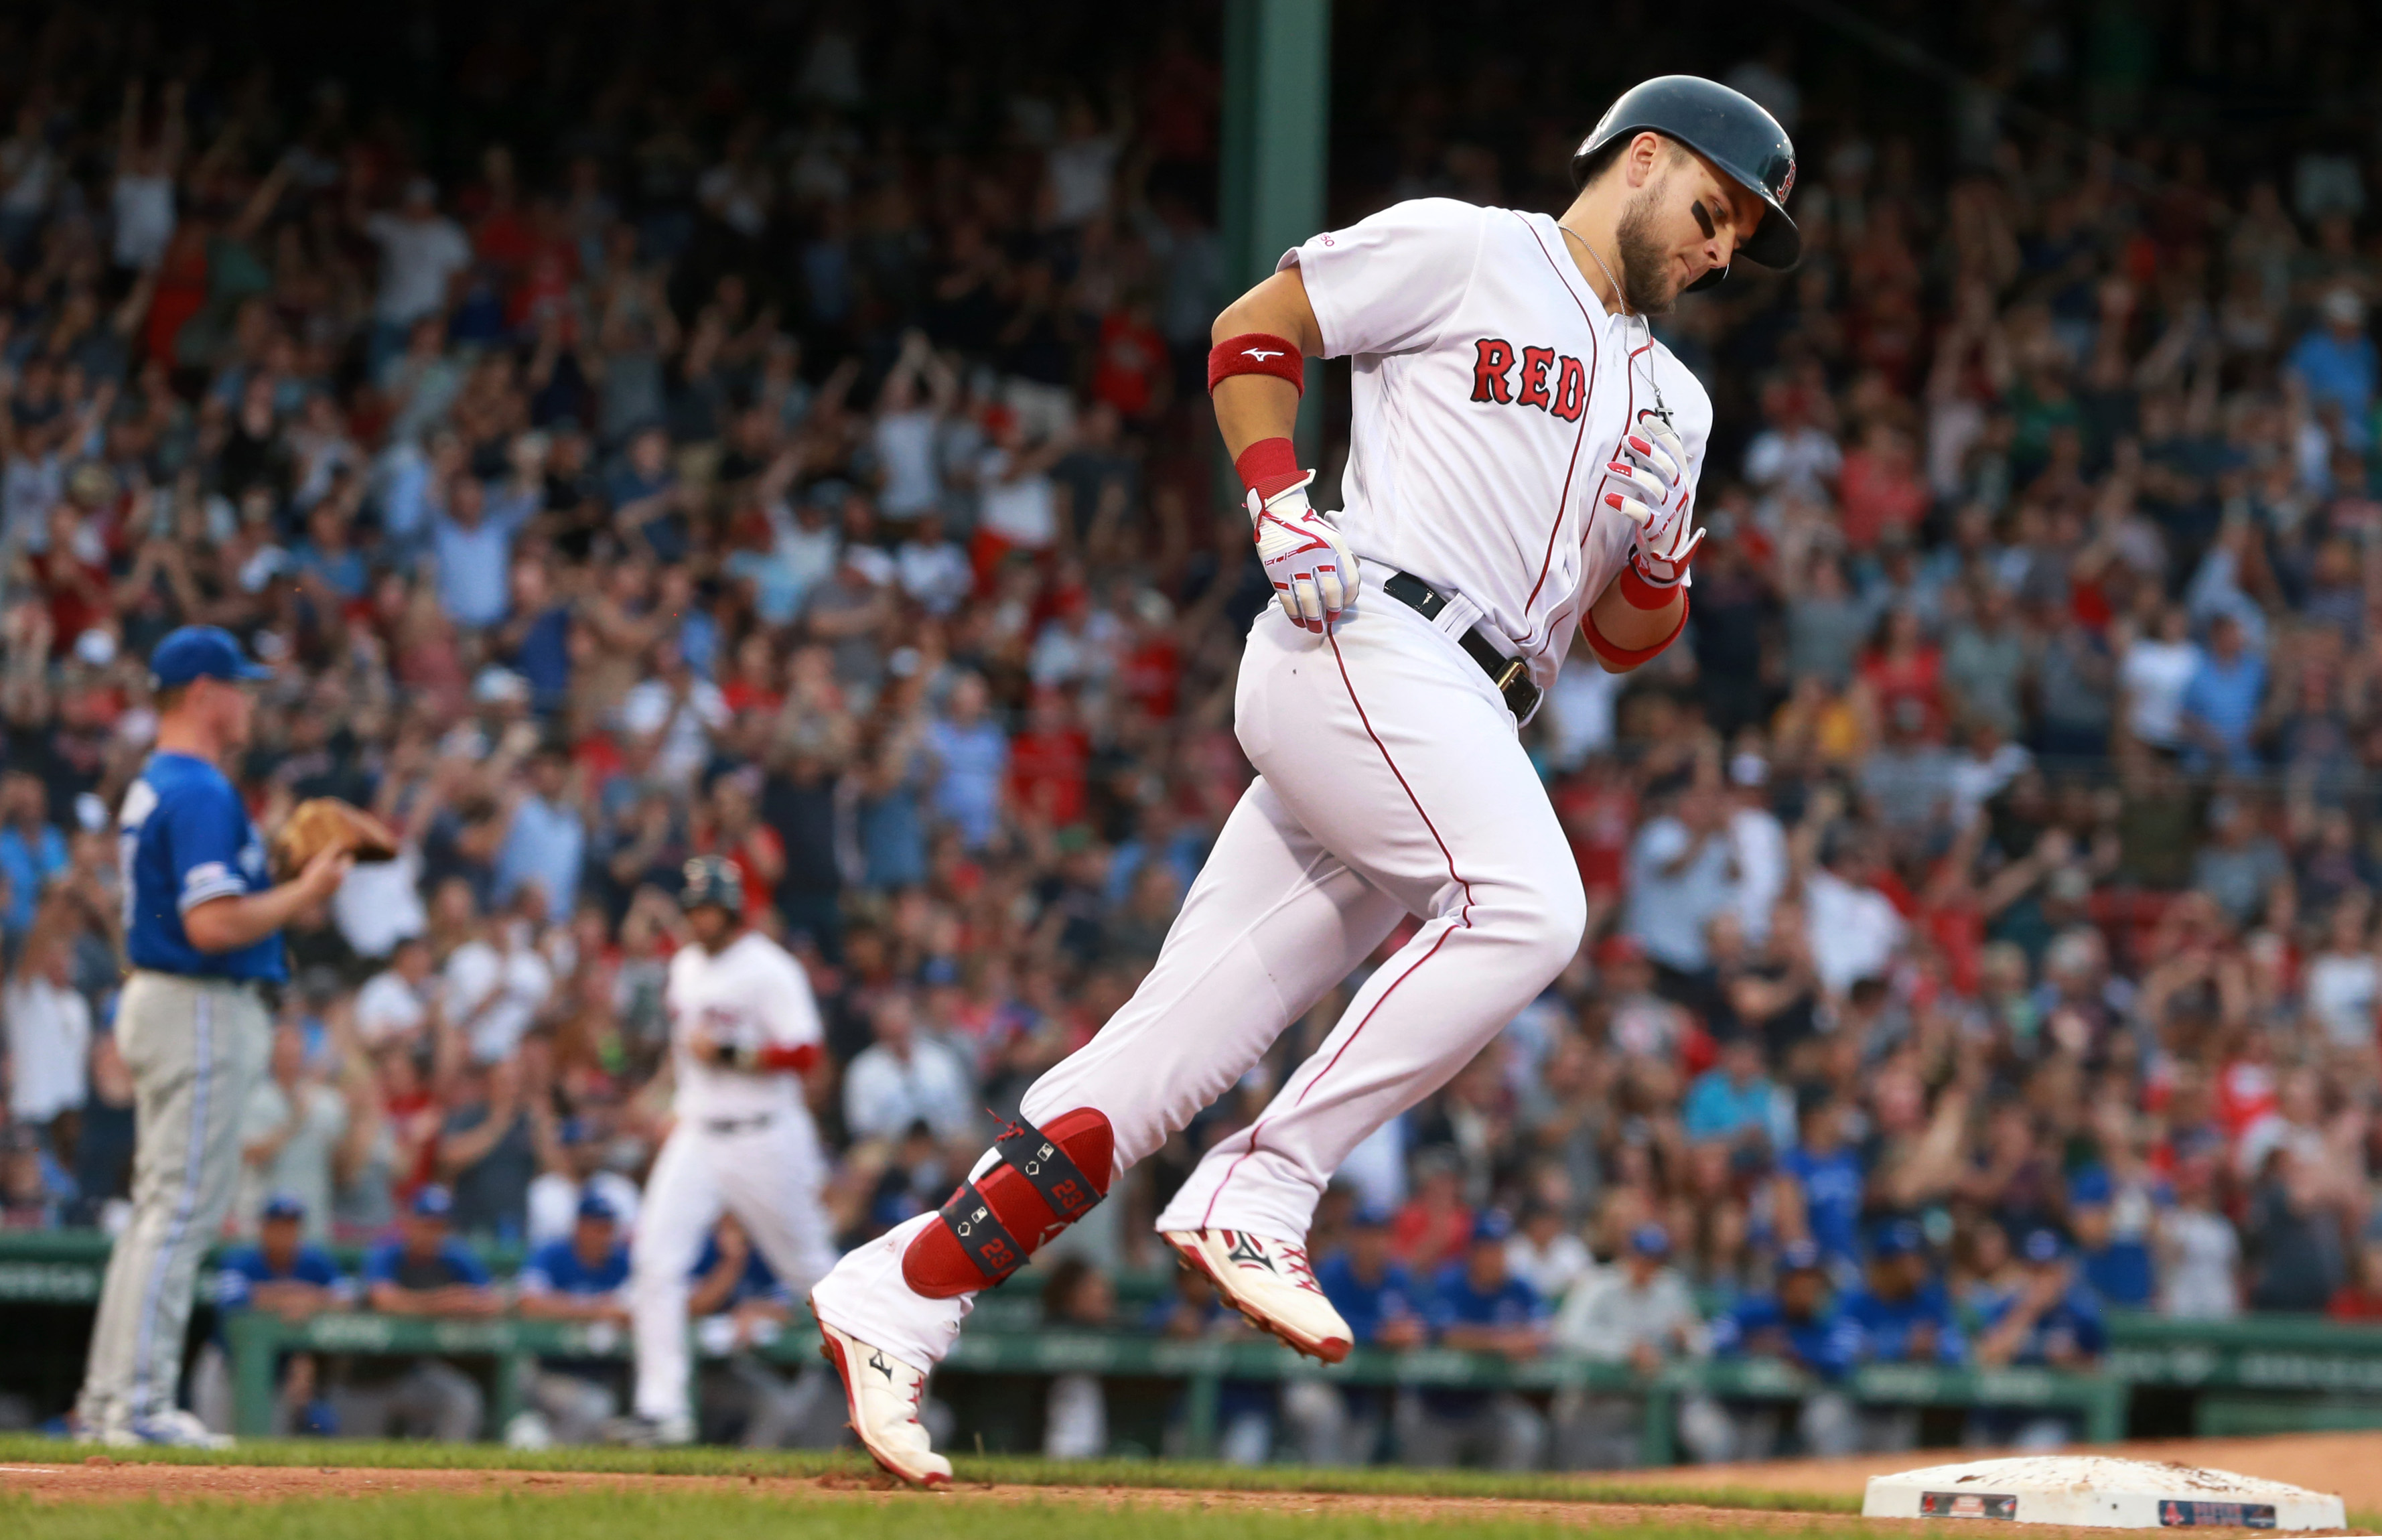 Red Sox slug their way past Blue Jays